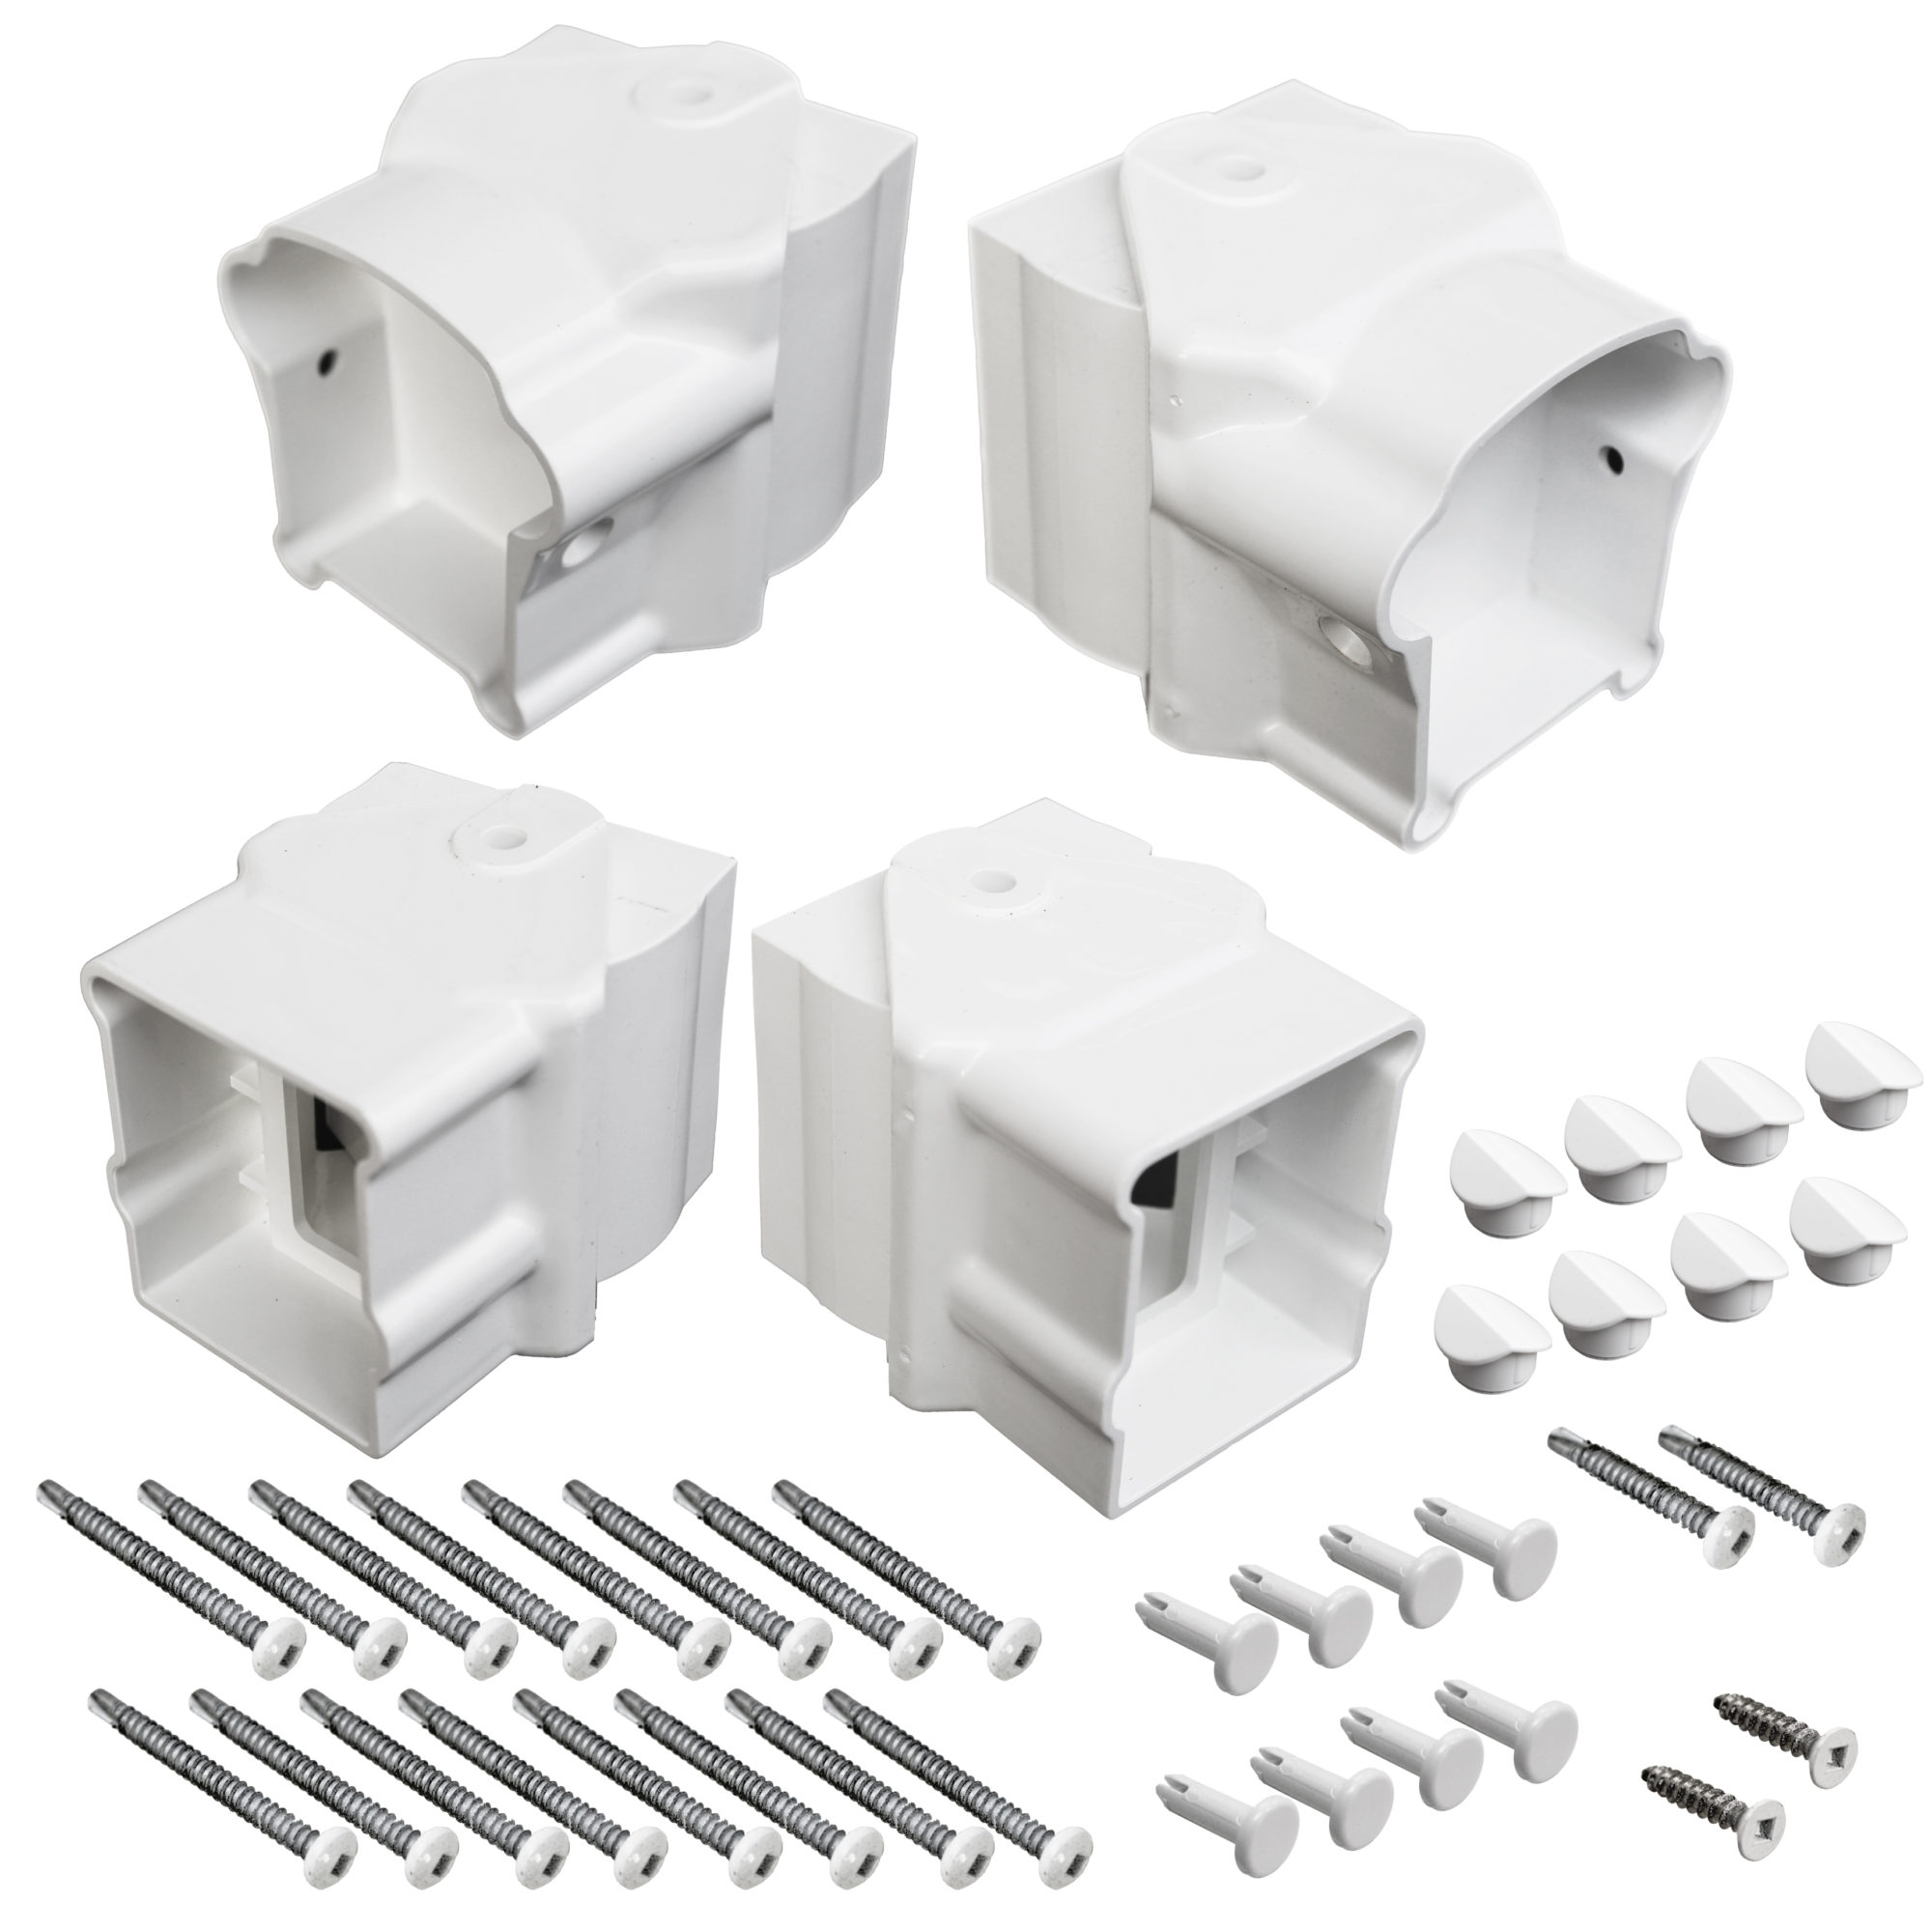 XPANSE RAILING ANGLE BRACKET WHITE (4PC)